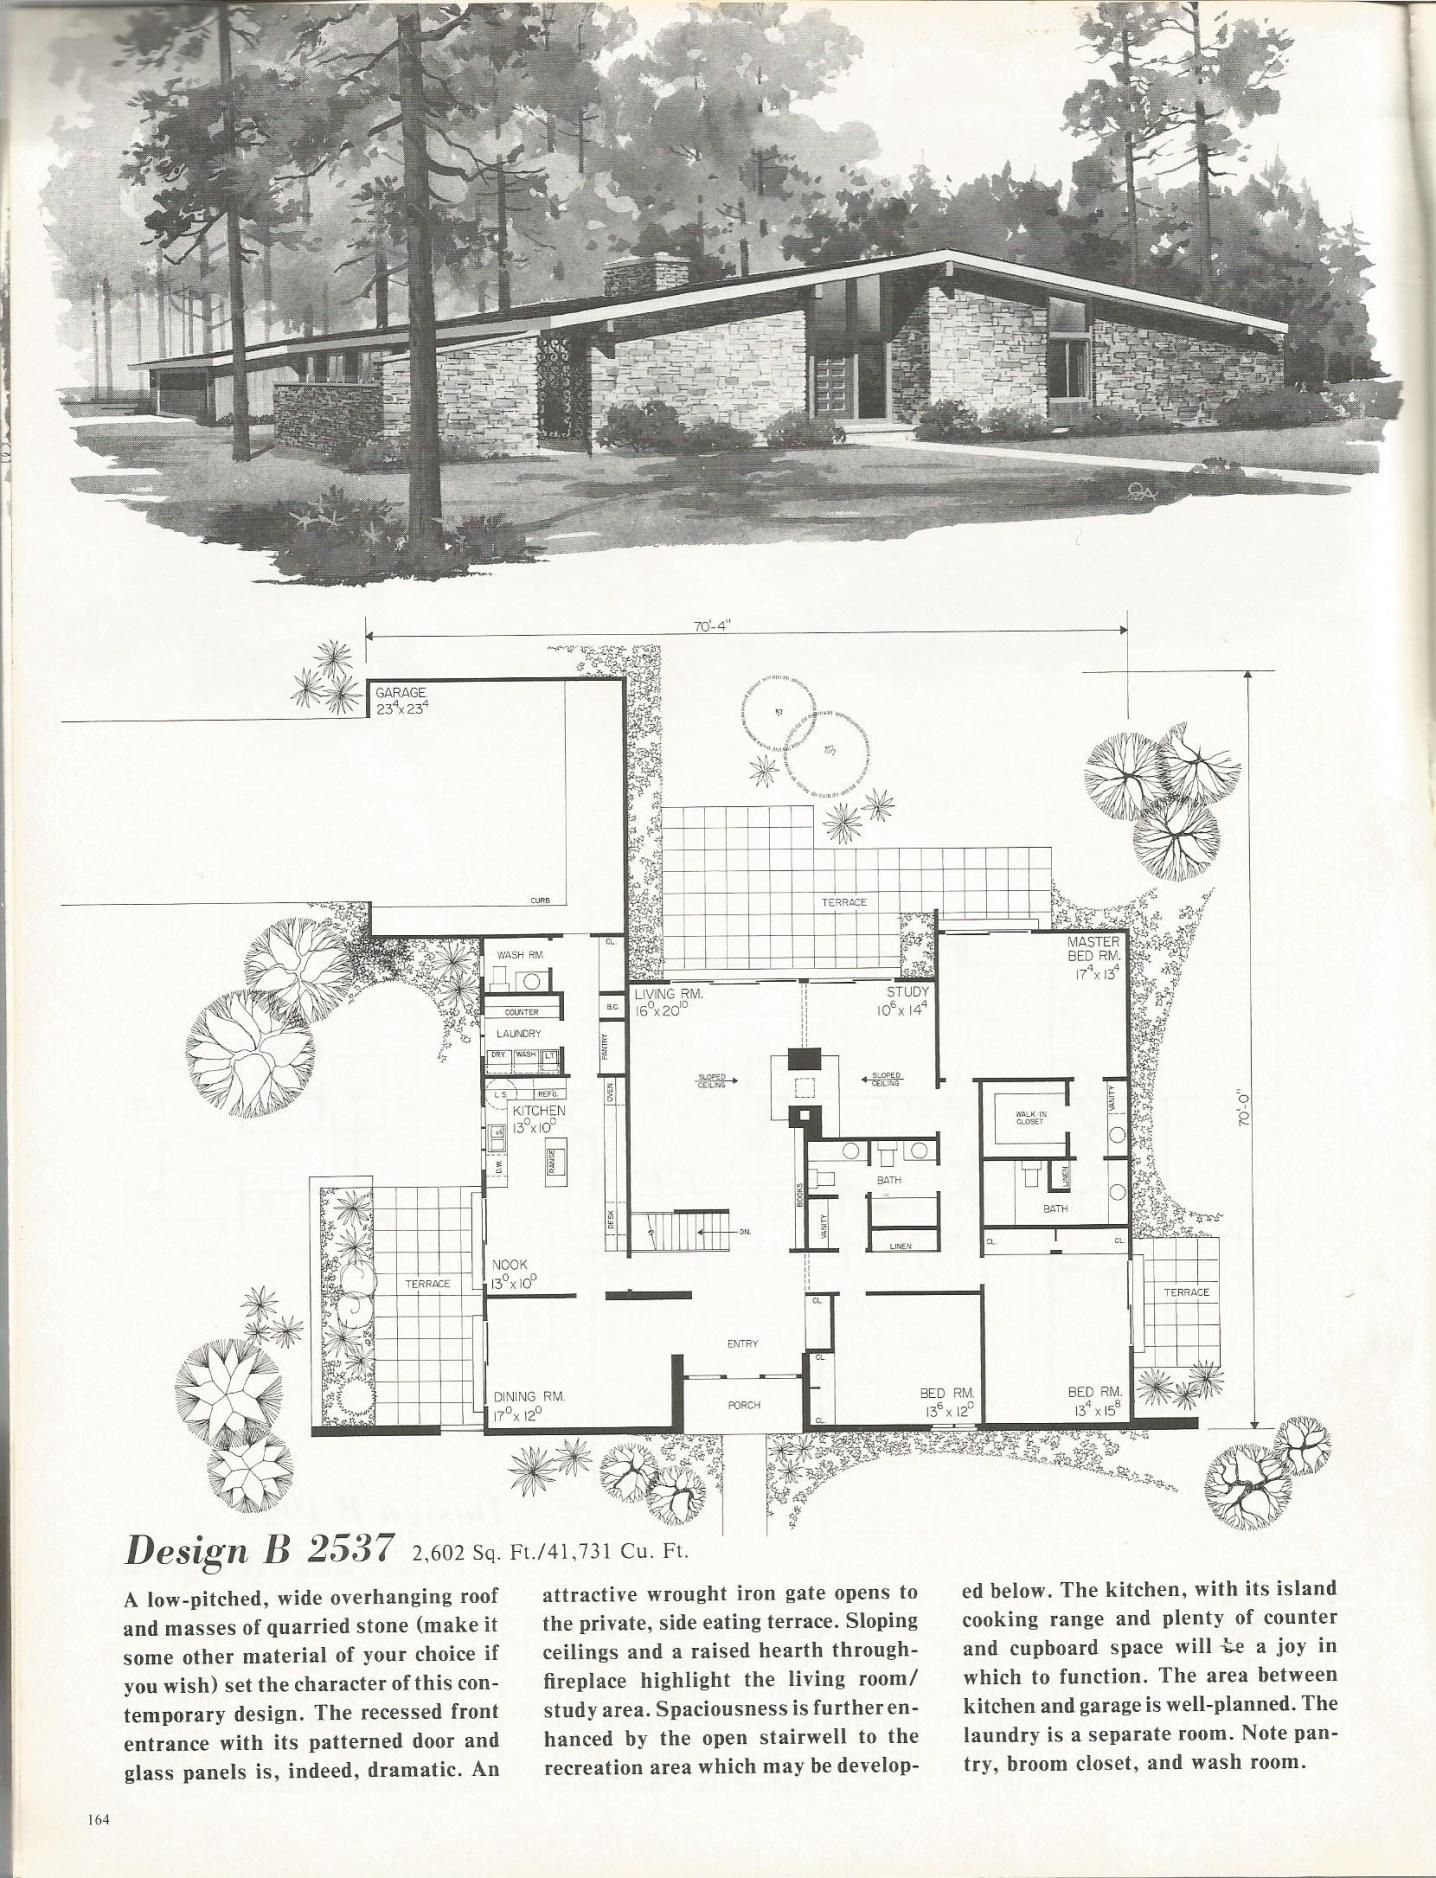 Retro Home Design Vintage House Plans Mid Century Homes 1960s Homes